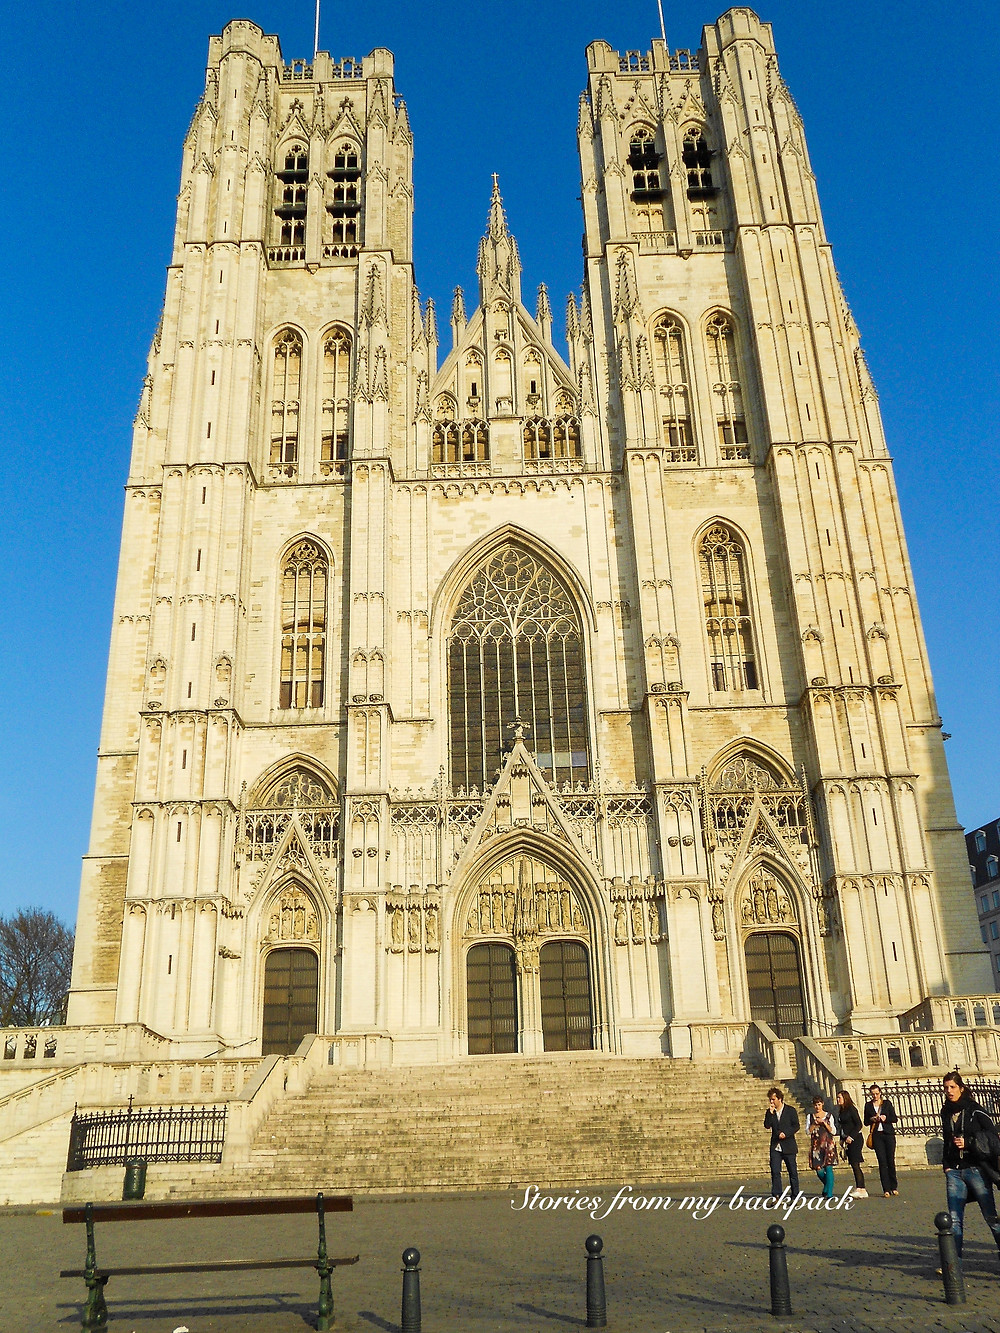 Mannekin Pis, What to do in Brussels, budget travel in Brussels, Europe on a budget, churches in Brussels, St. Michael & St. Gudula Cathedral